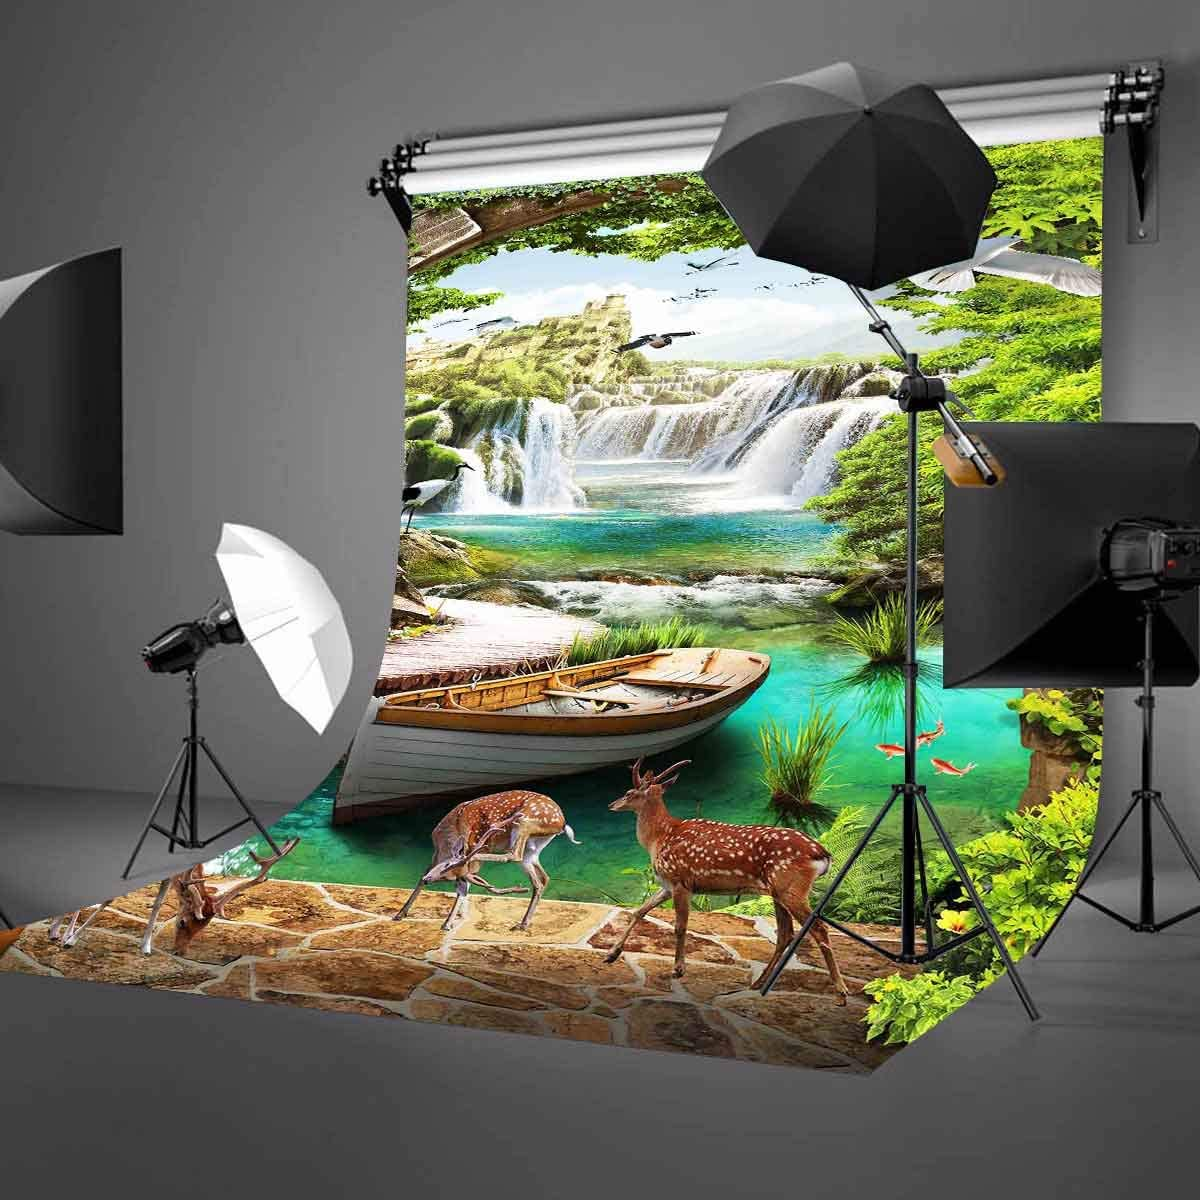 LYLYCTY 5x7ft Natural Beauty Backdrop White Crane Plum Blossom Deer Mountain Waterfall Waterfall Fairyland Photography Backdrop Photo Photography Background Props Studio Indoor Decorations LYNAN452